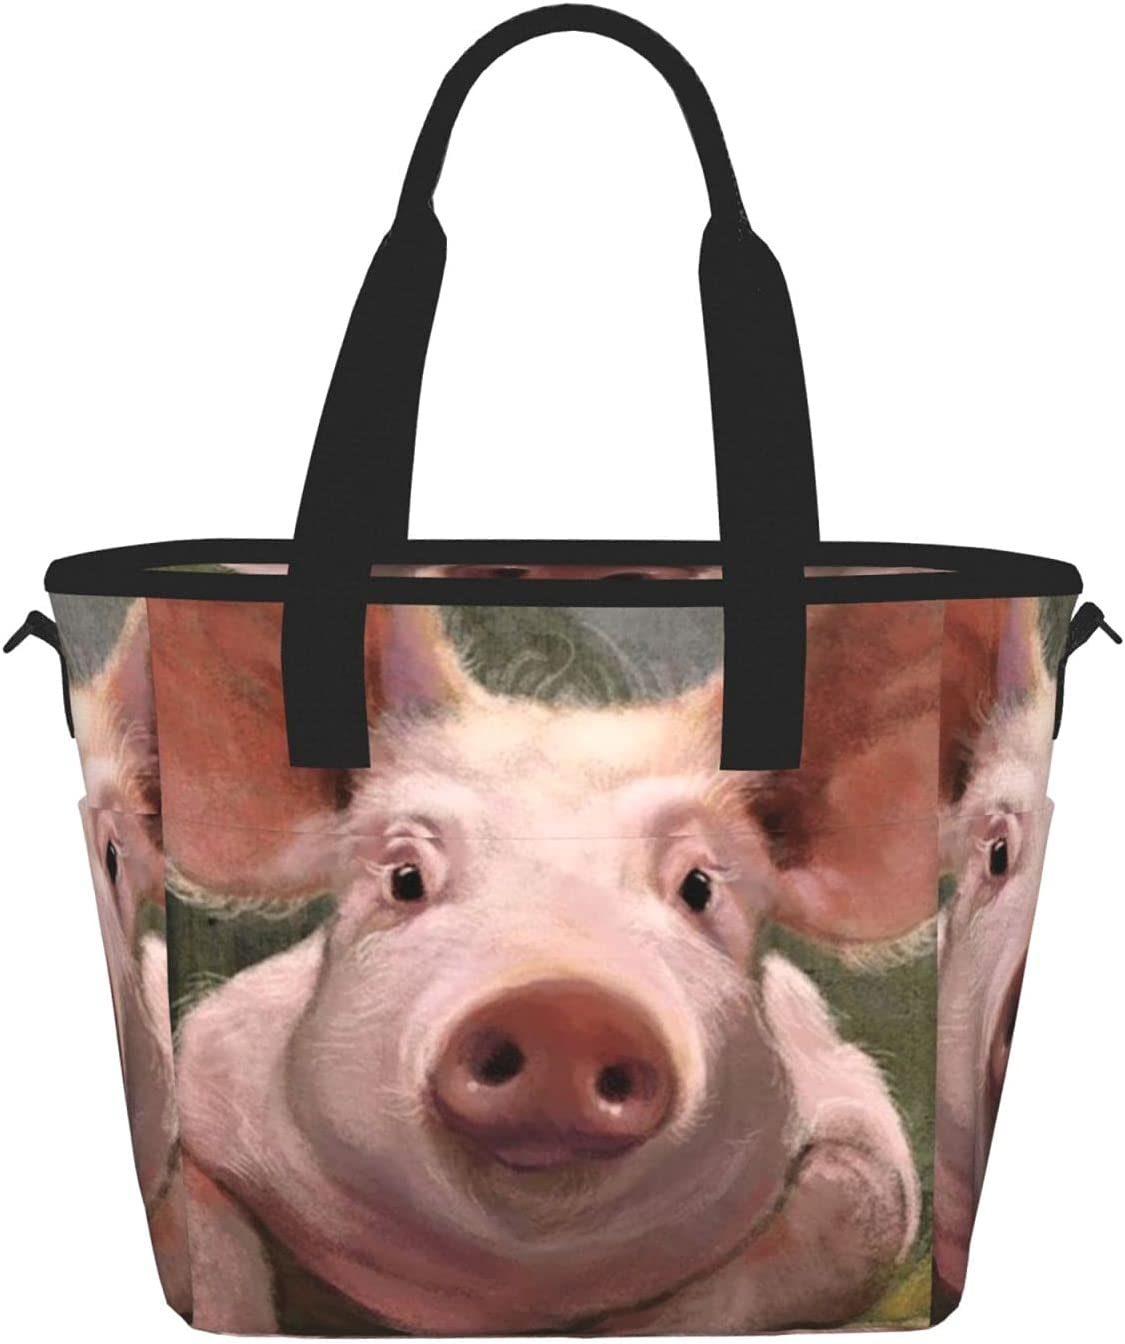 Cute Pigprinting Women'S Lunch Bag Discount mail order Portable Inexpensive Lun Fashion Meal